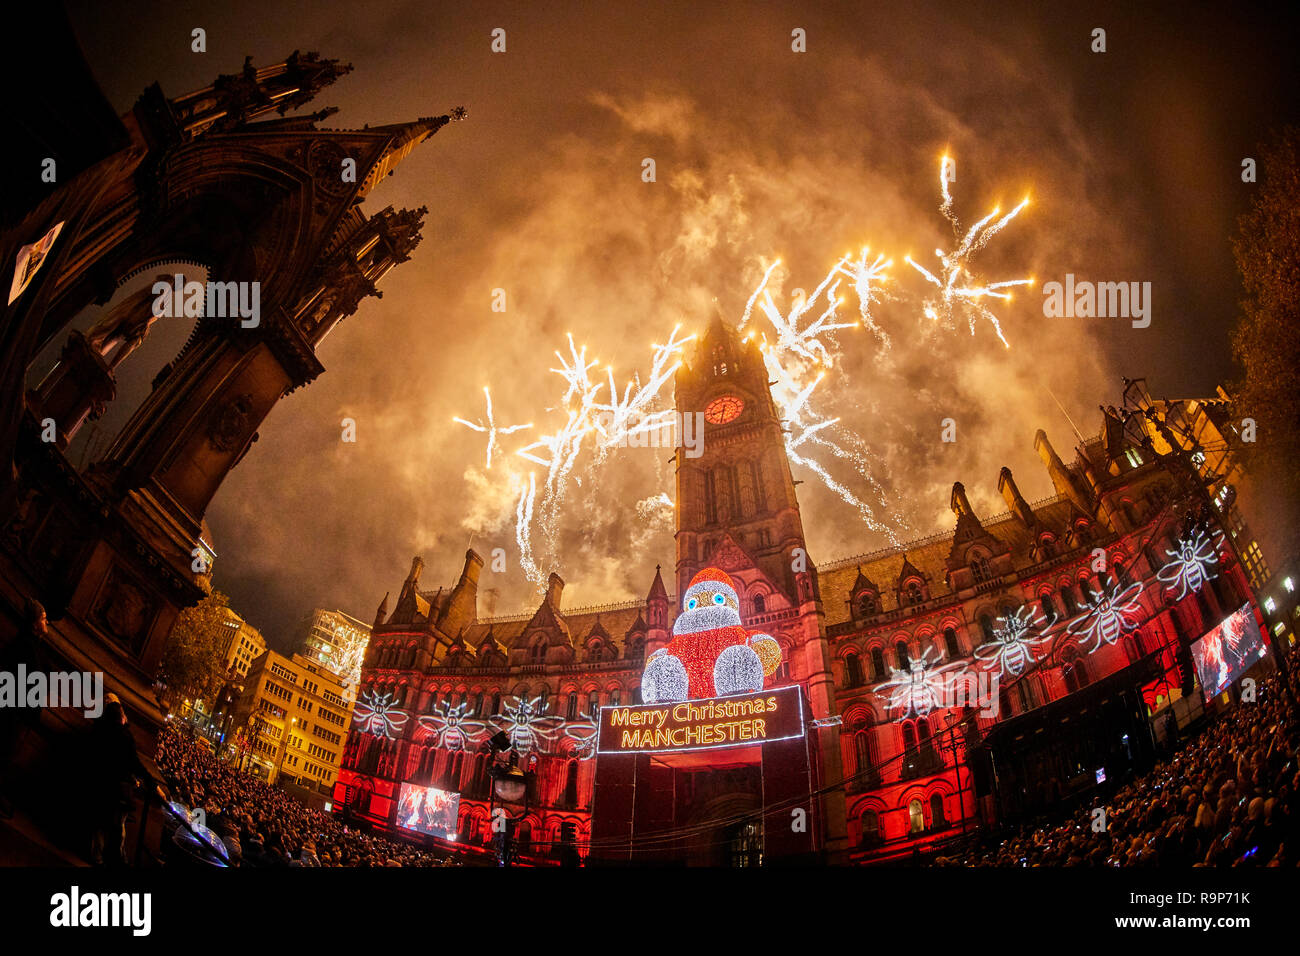 Manchester 2018 Christmas light switch Albert Square  Fireworks explode in the sky above the landmark town hall building with zippy the santa r Stock Photo